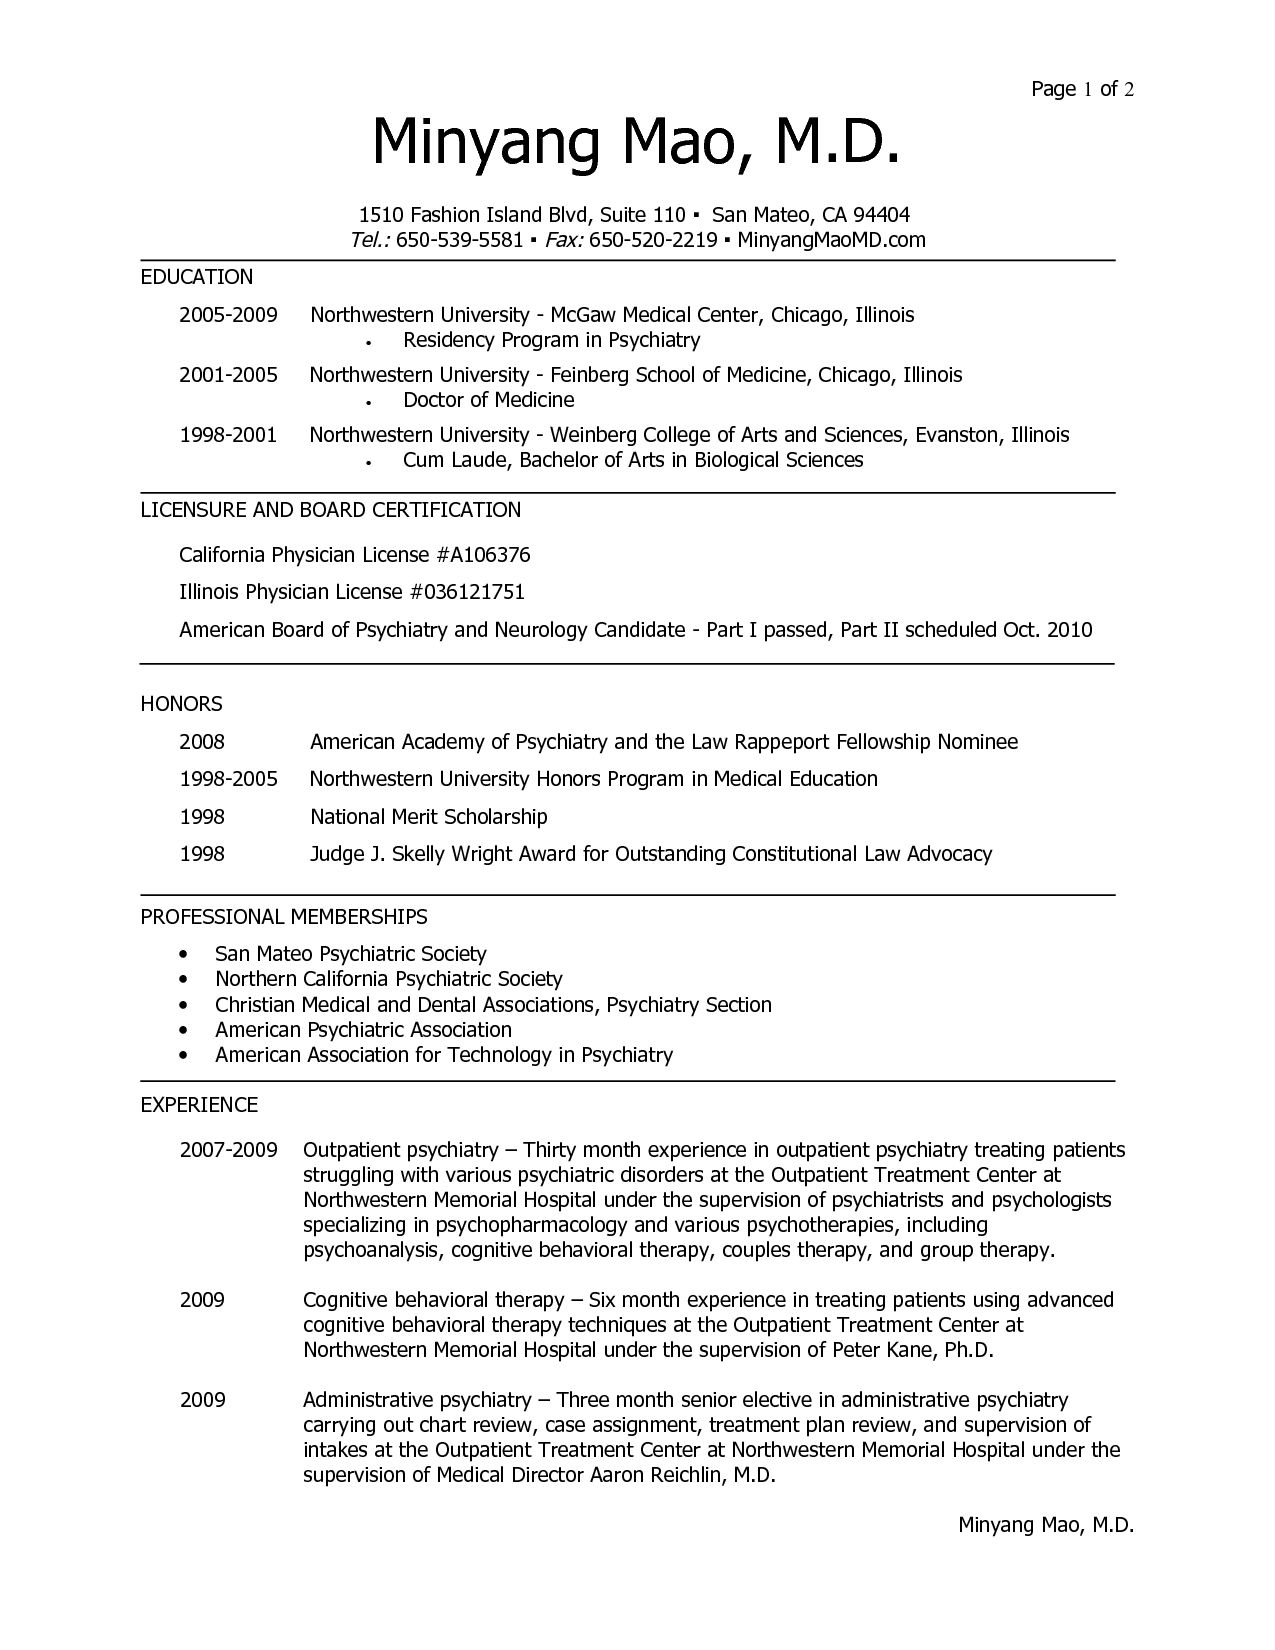 medical school resume template medical school resume example fb238a1b2 - School Resume Template